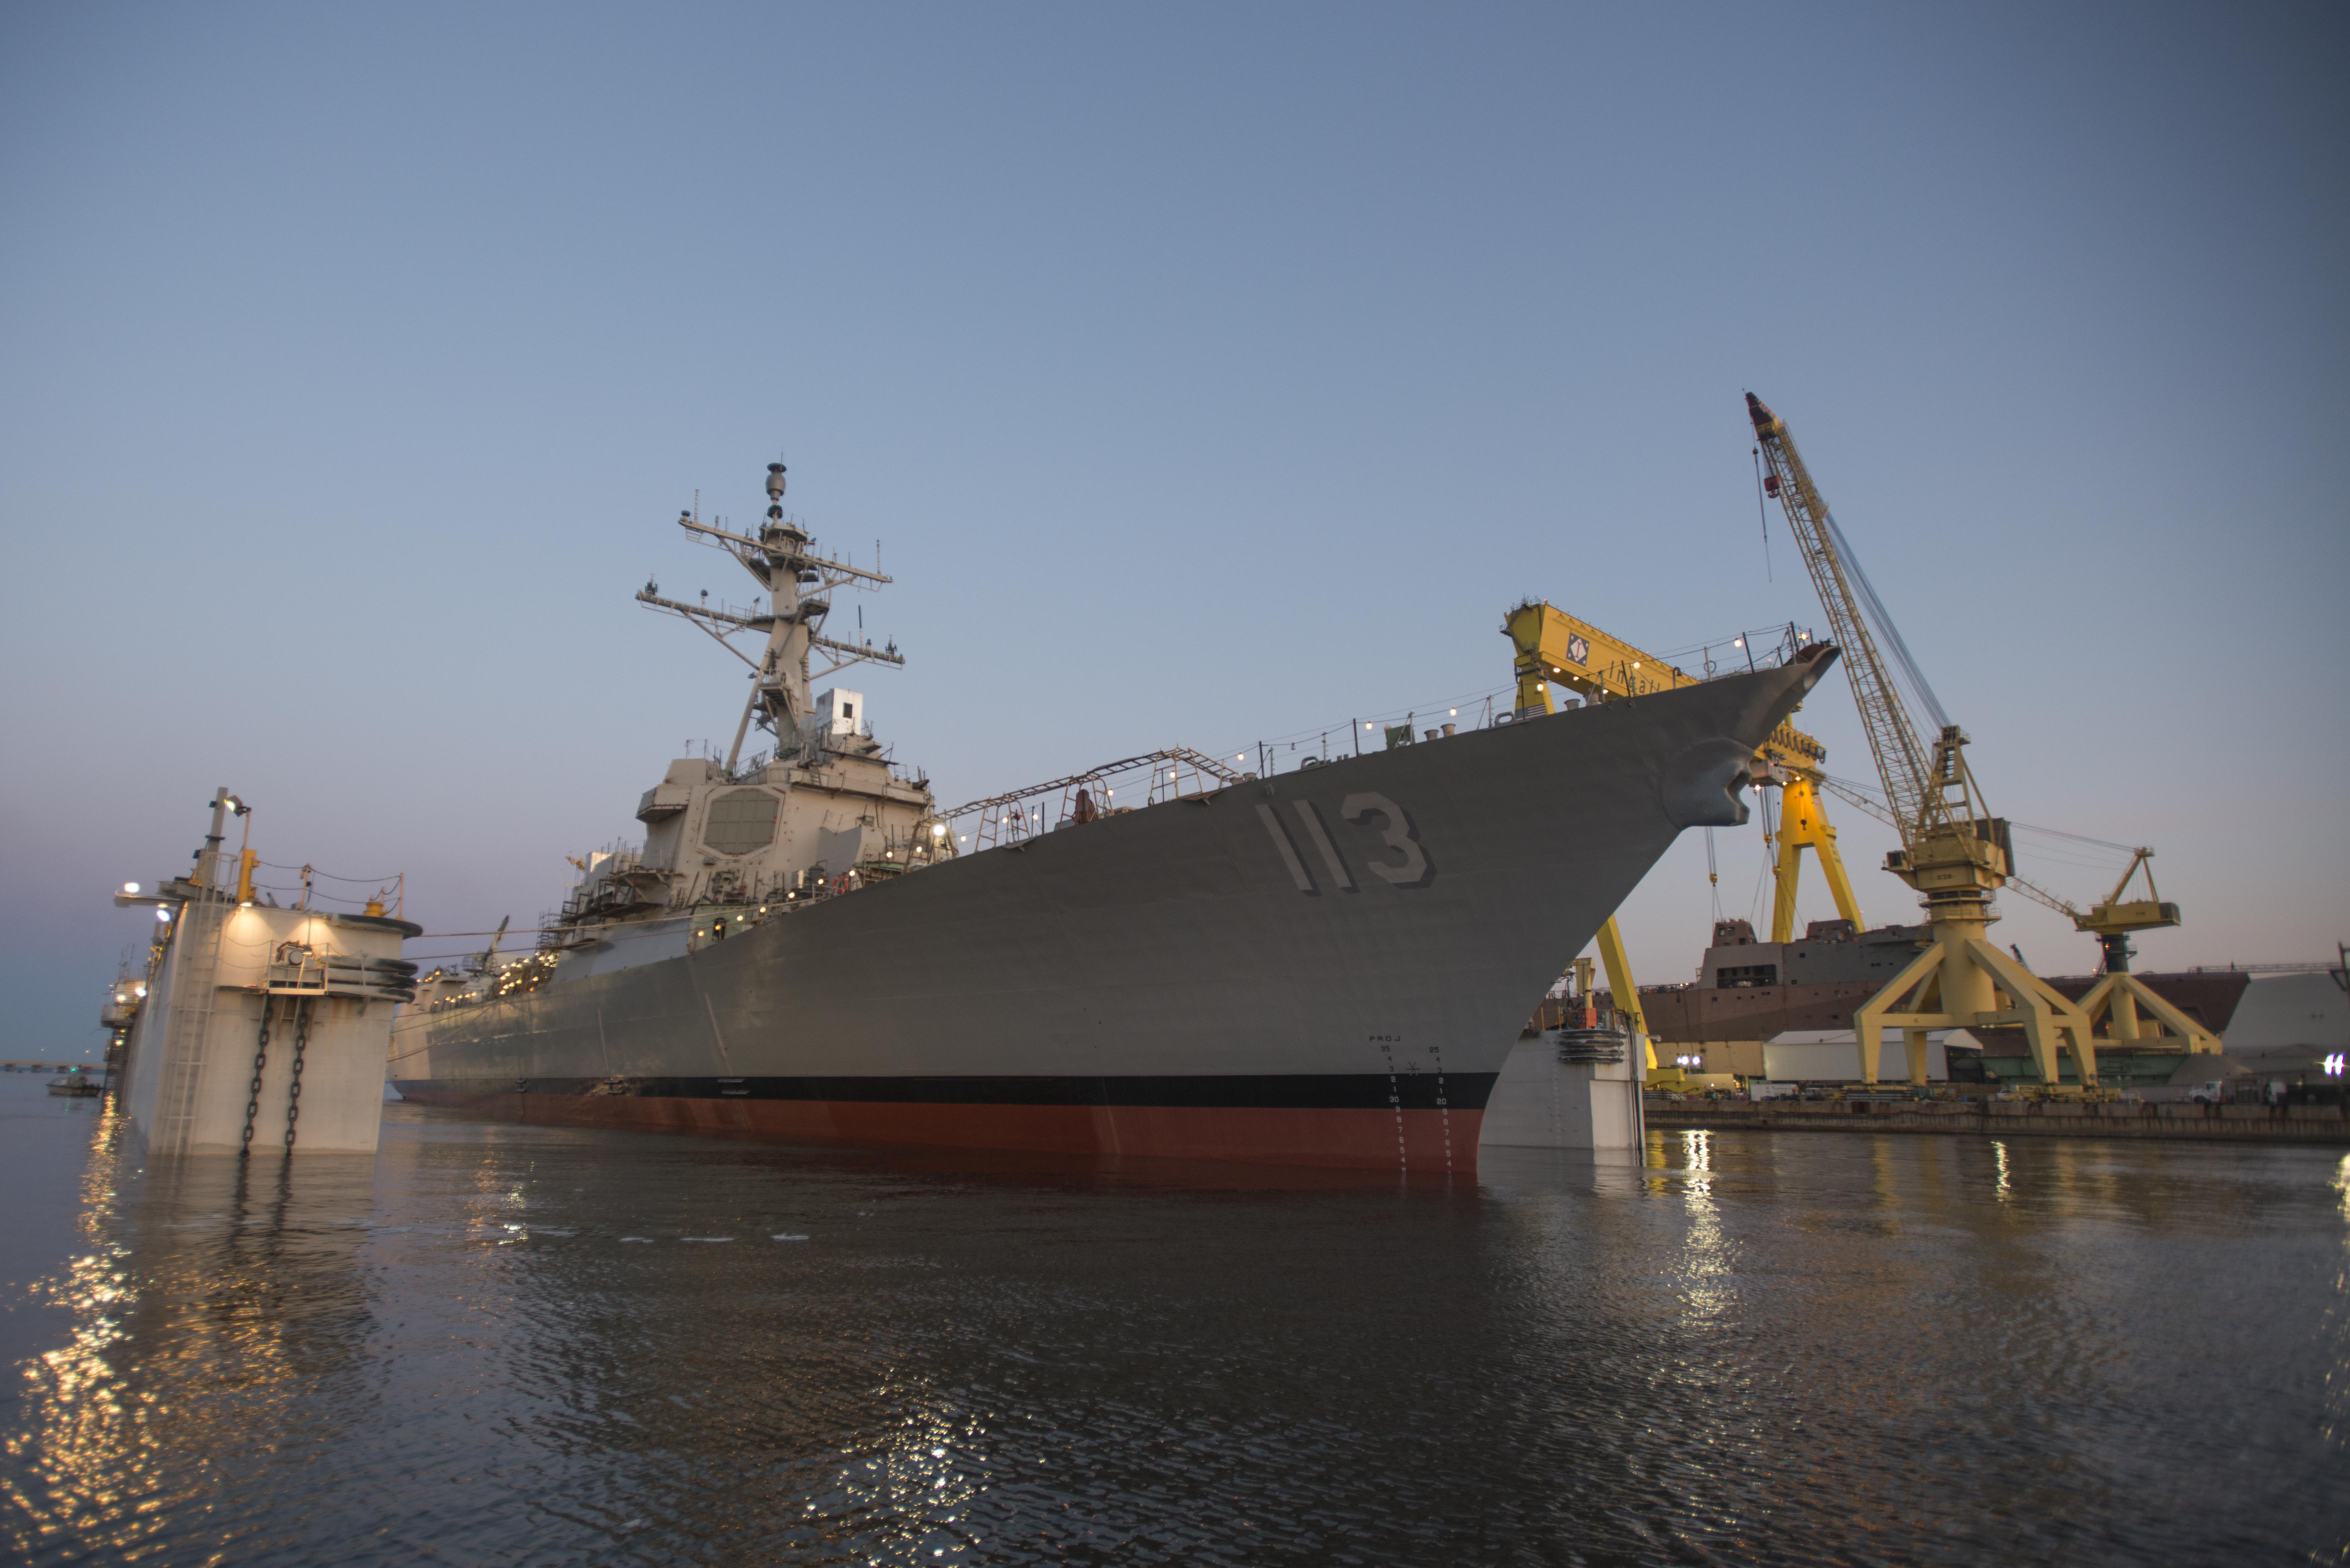 Ingalls Shipbuilding launched the Arleigh Burke-class Aegis guided missile destroyer John Finn (DDG 113) on March 28, 2015. Huntington Ingalls Industries photo.